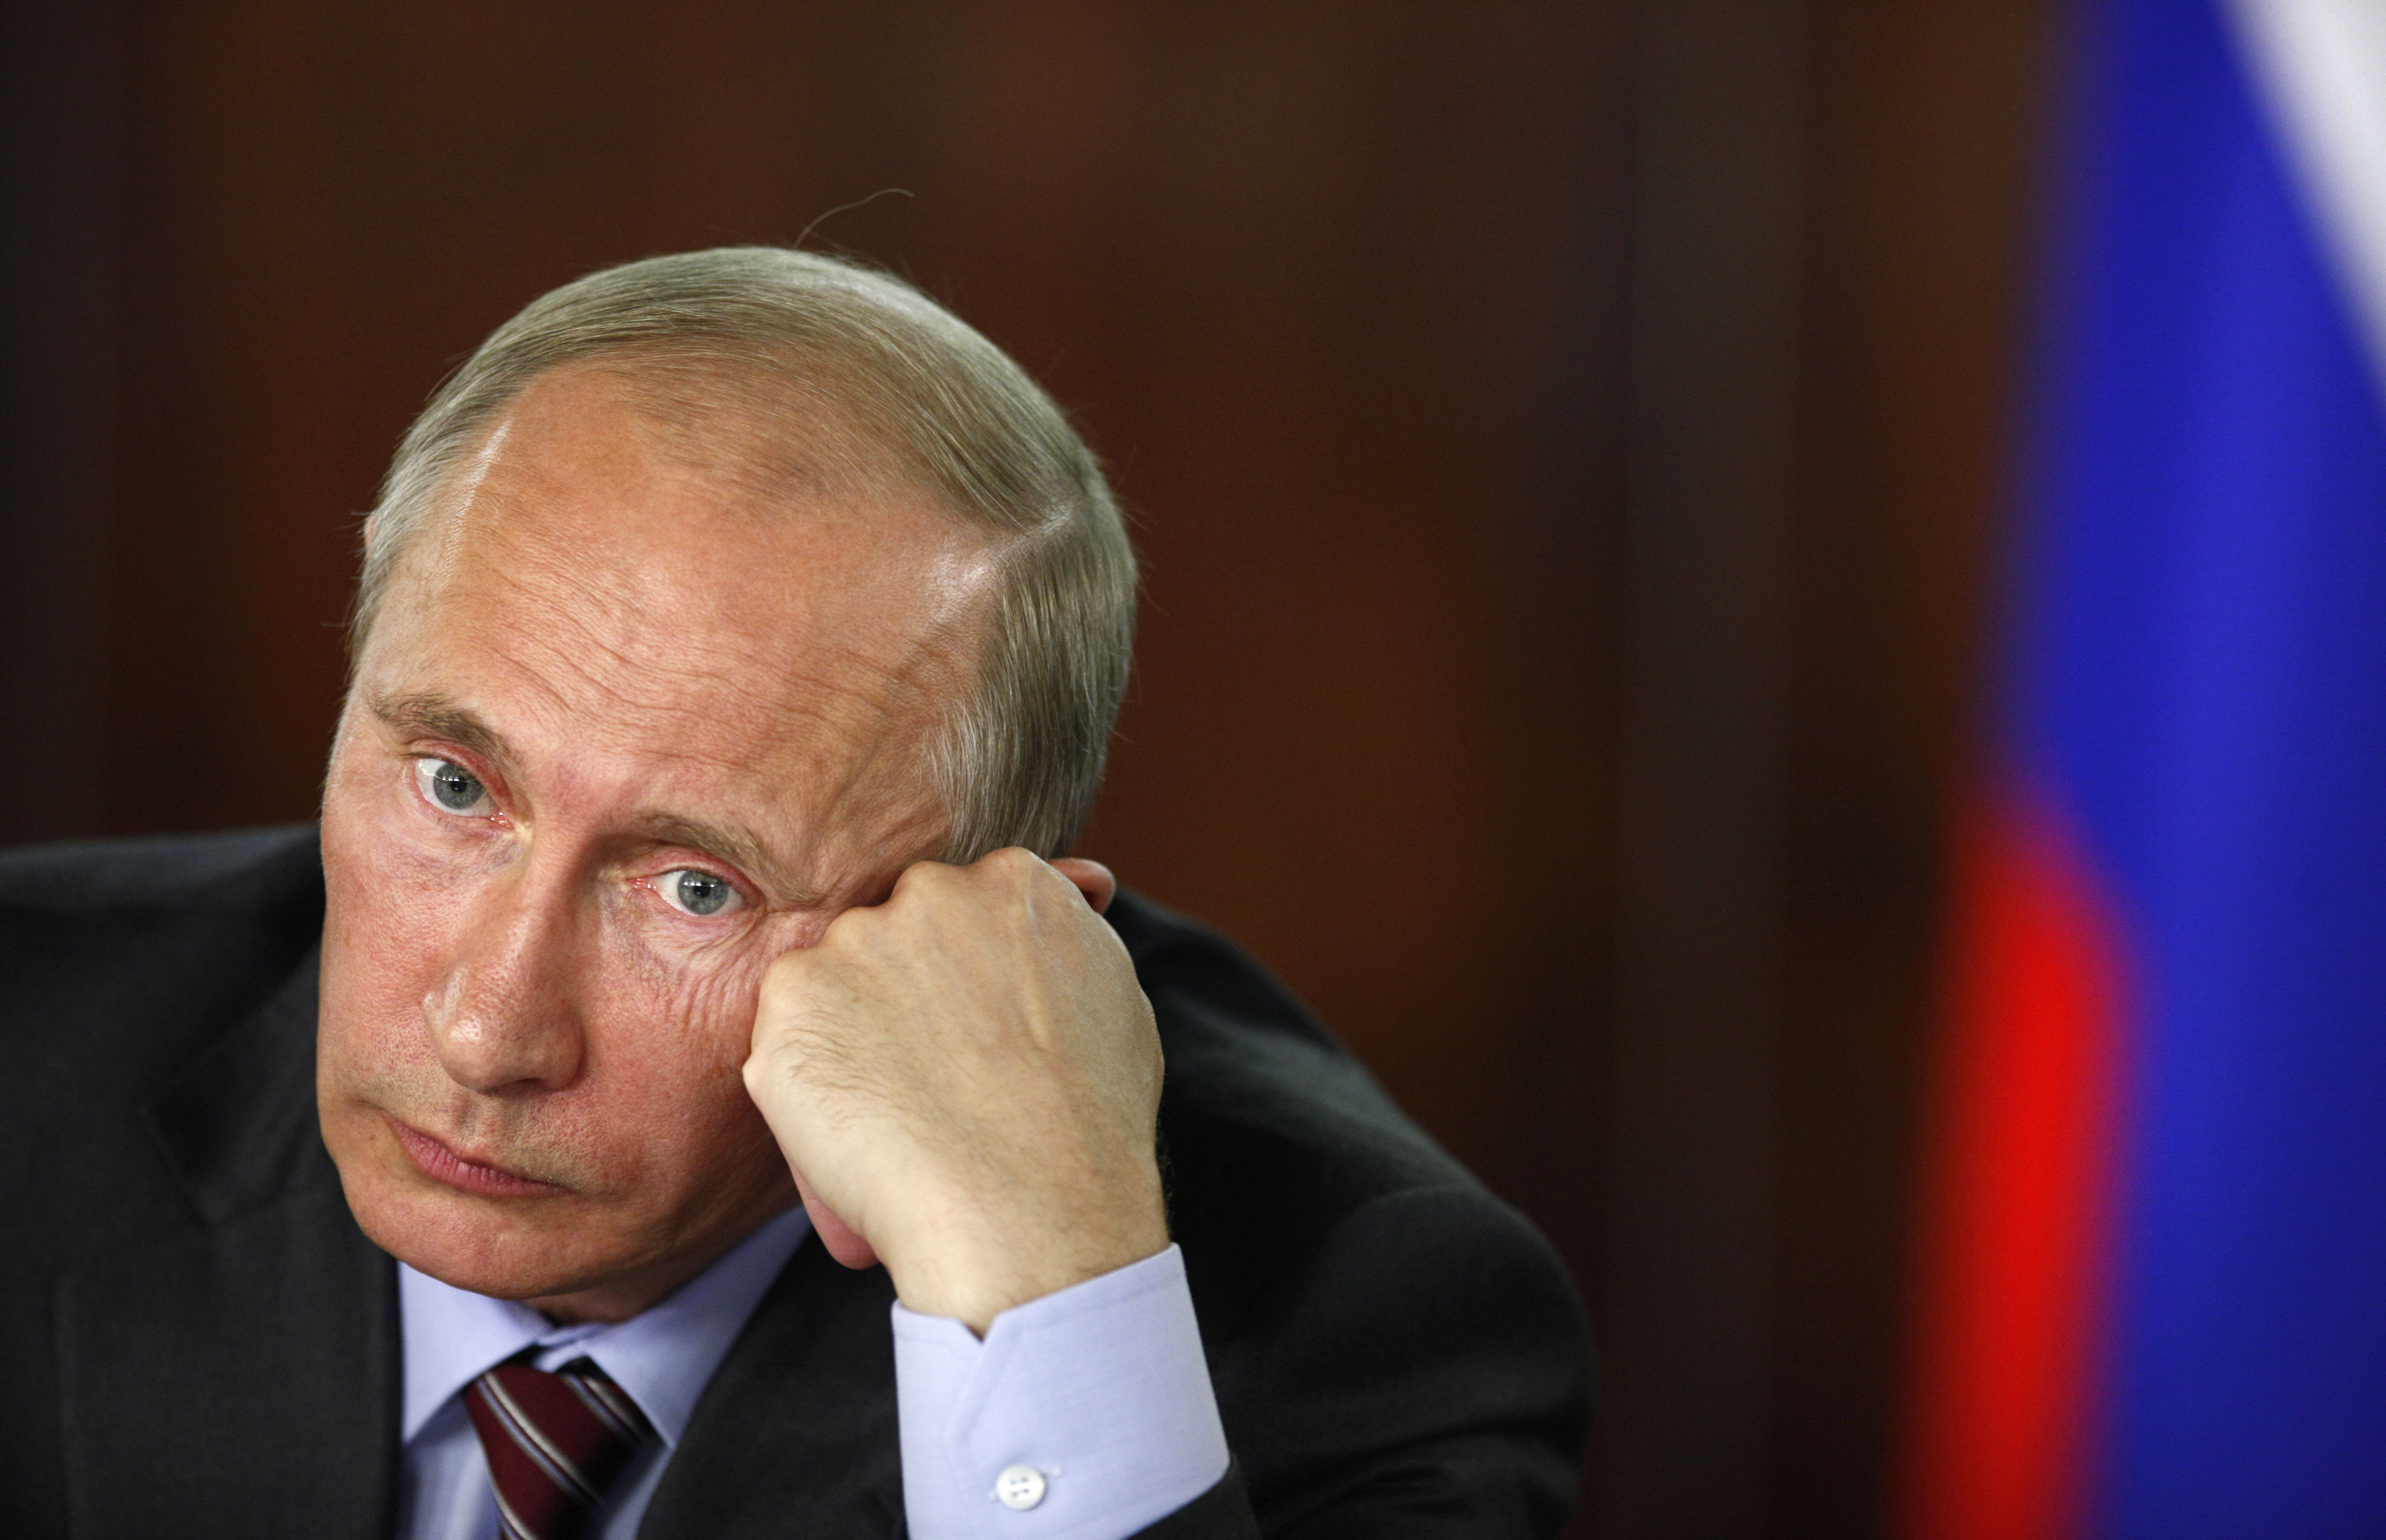 wladimir putin dissertation Wladimir putin dissertation - why be concerned about the assignment get the needed guidance on the website use this service to get your sophisticated paper delivered on time get to know.